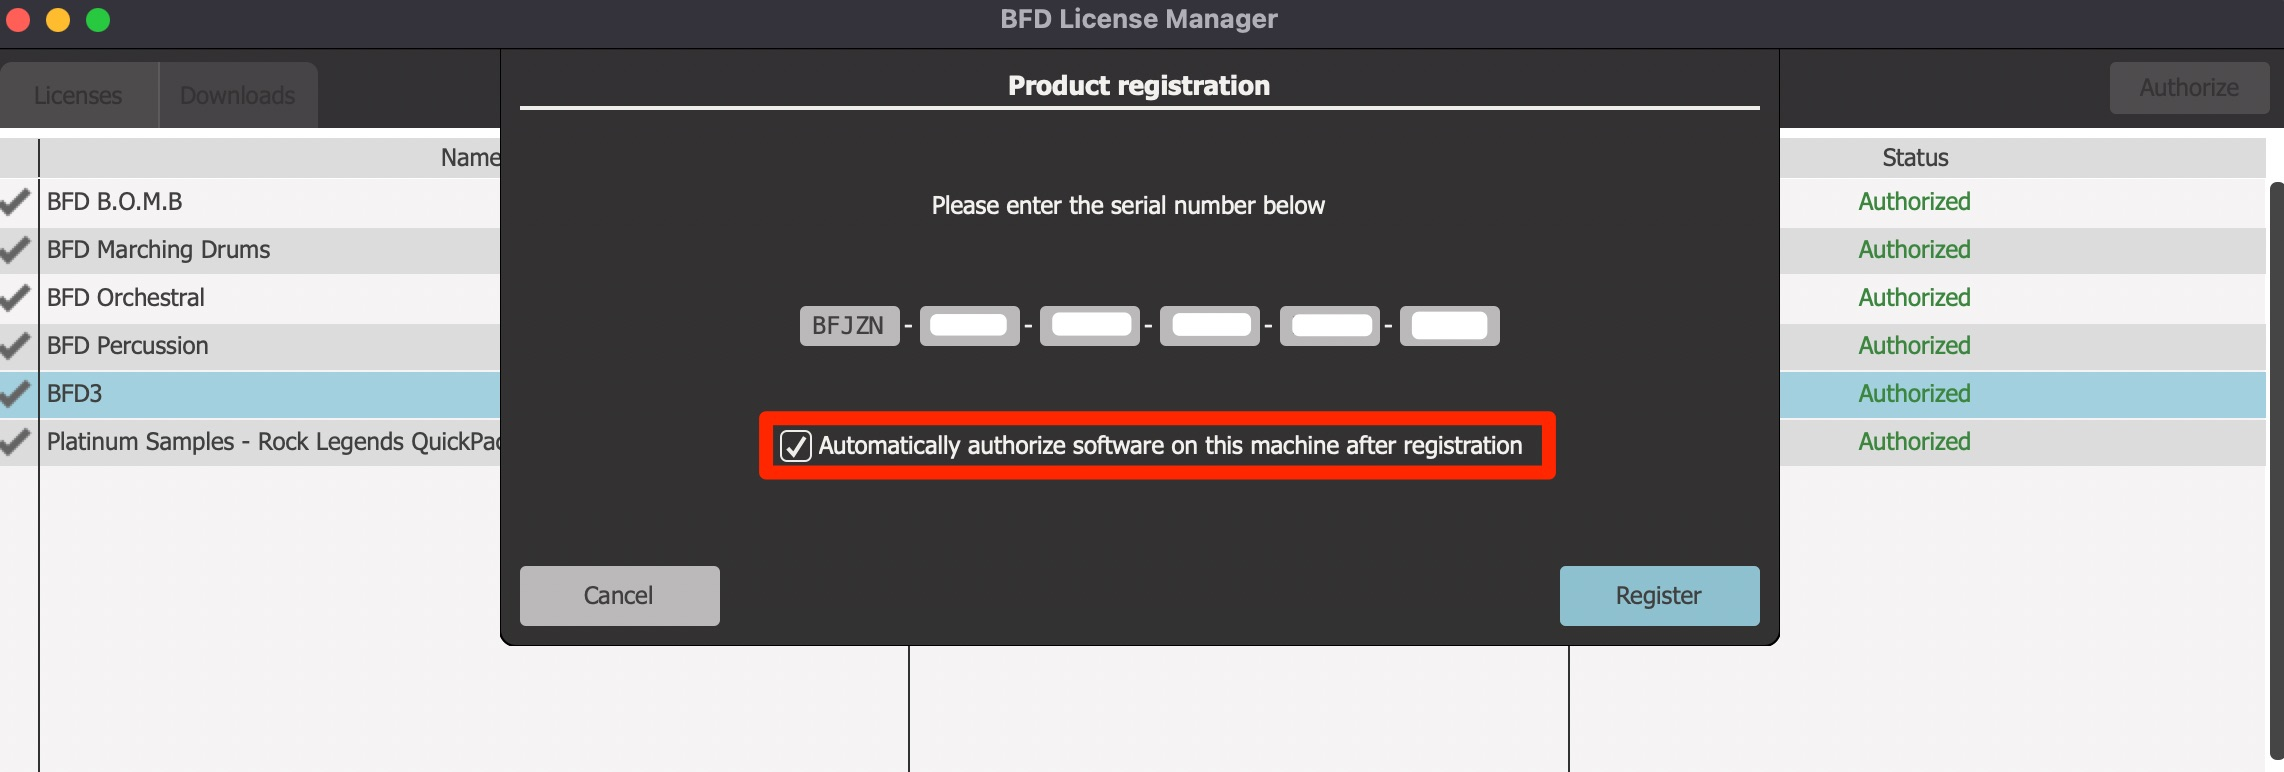 BFD_License_Manager